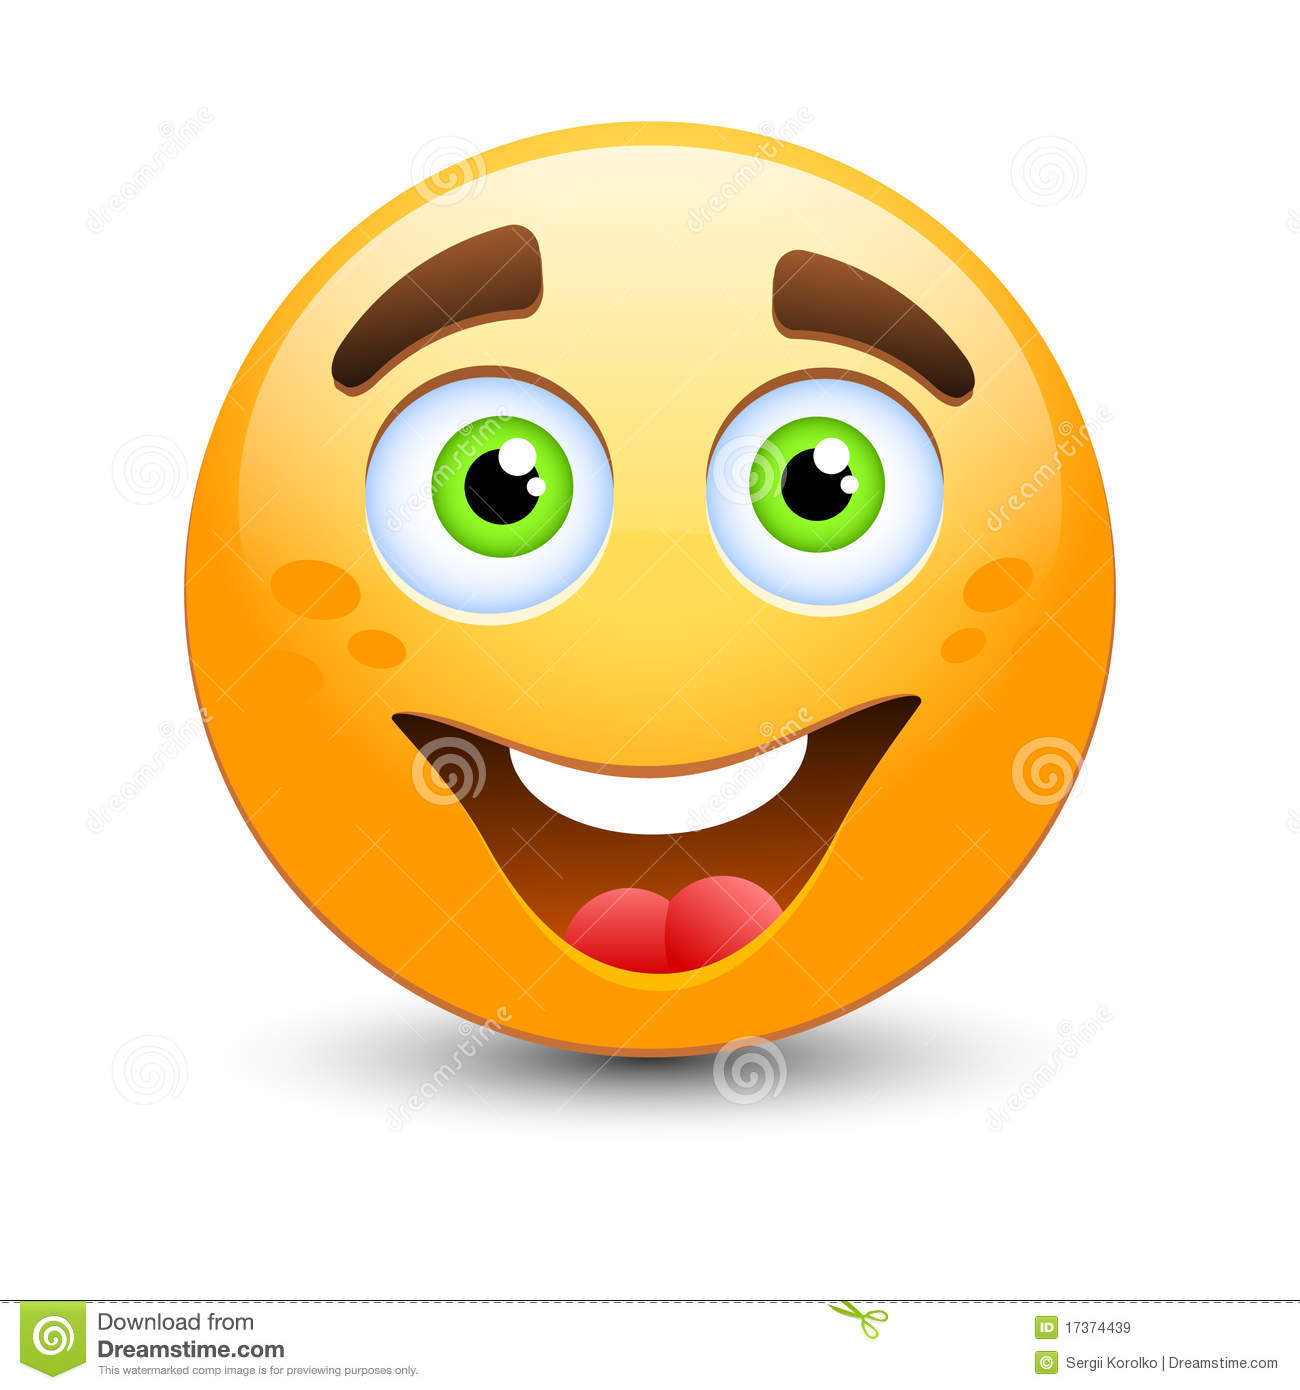 emoticon-feliz-17374439.jpg